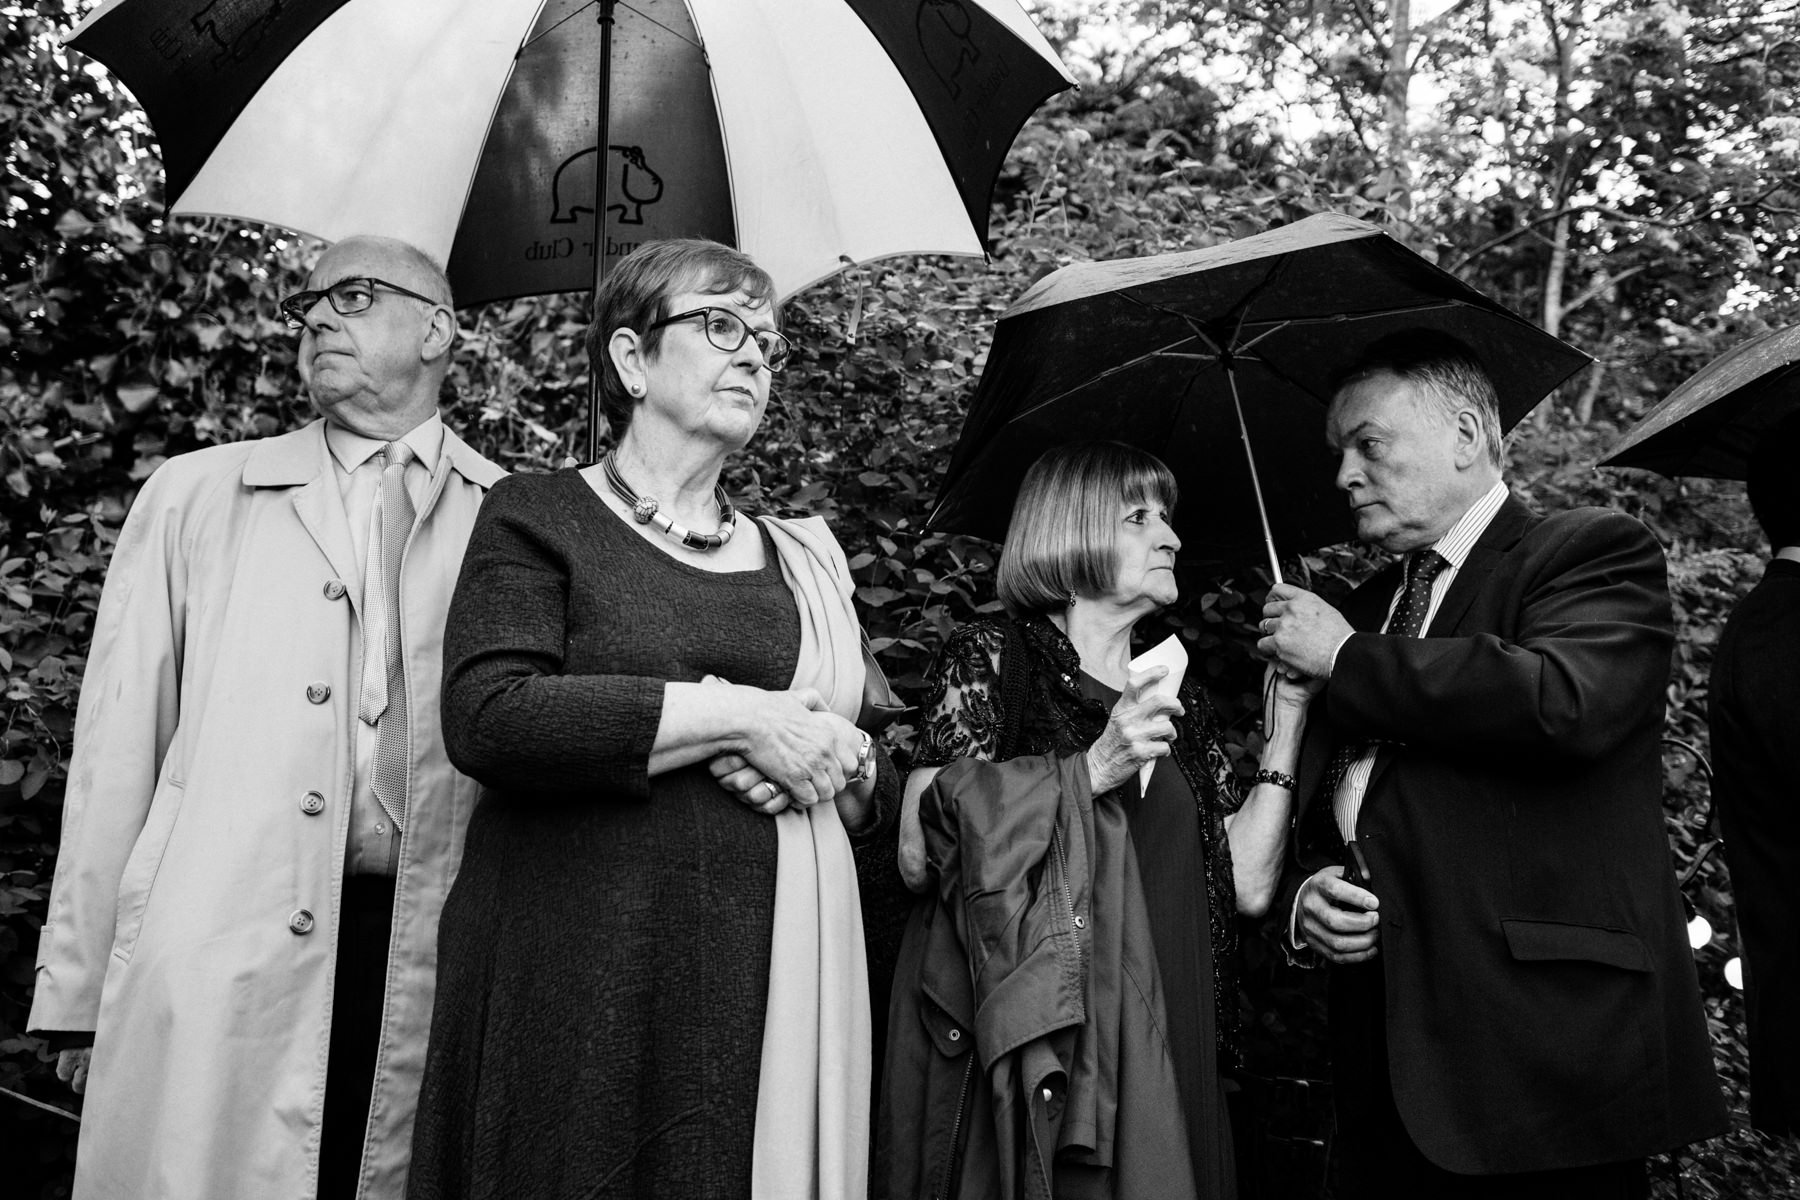 Funny wedding photo of miserable wedding guests in the rain with umbrellas